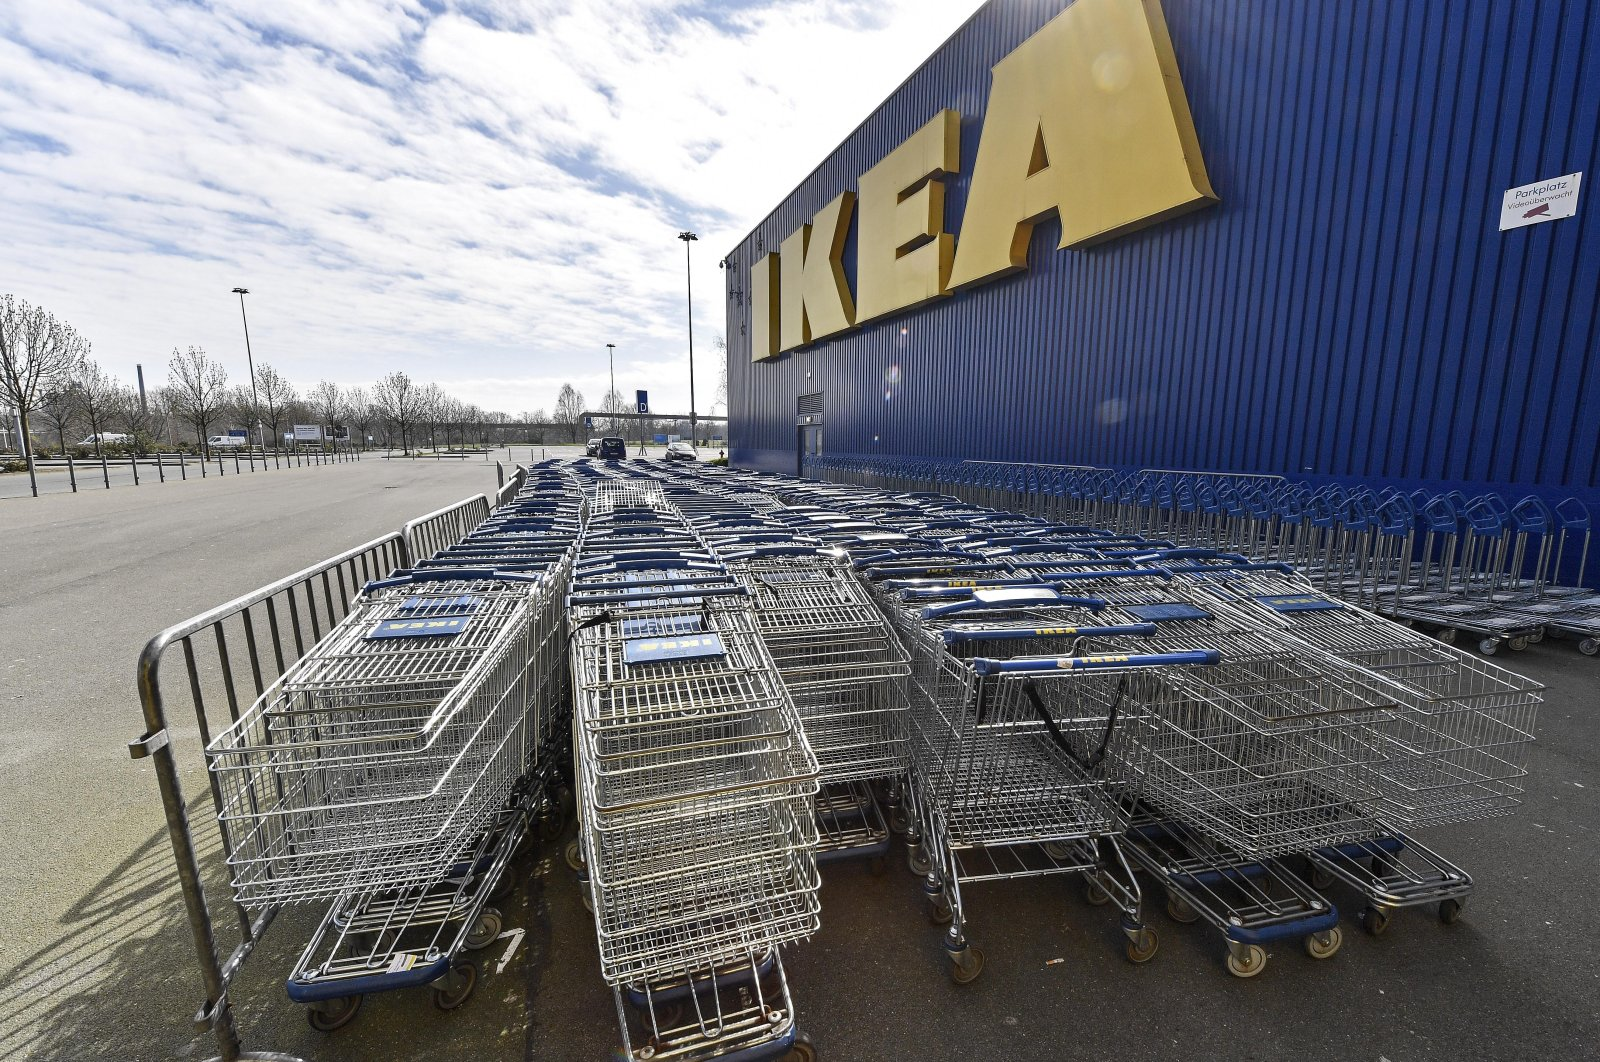 Empty trolleys are stored in front of an IKEA store in Duisburg, Germany, March 19, 2020. (AP Photo)